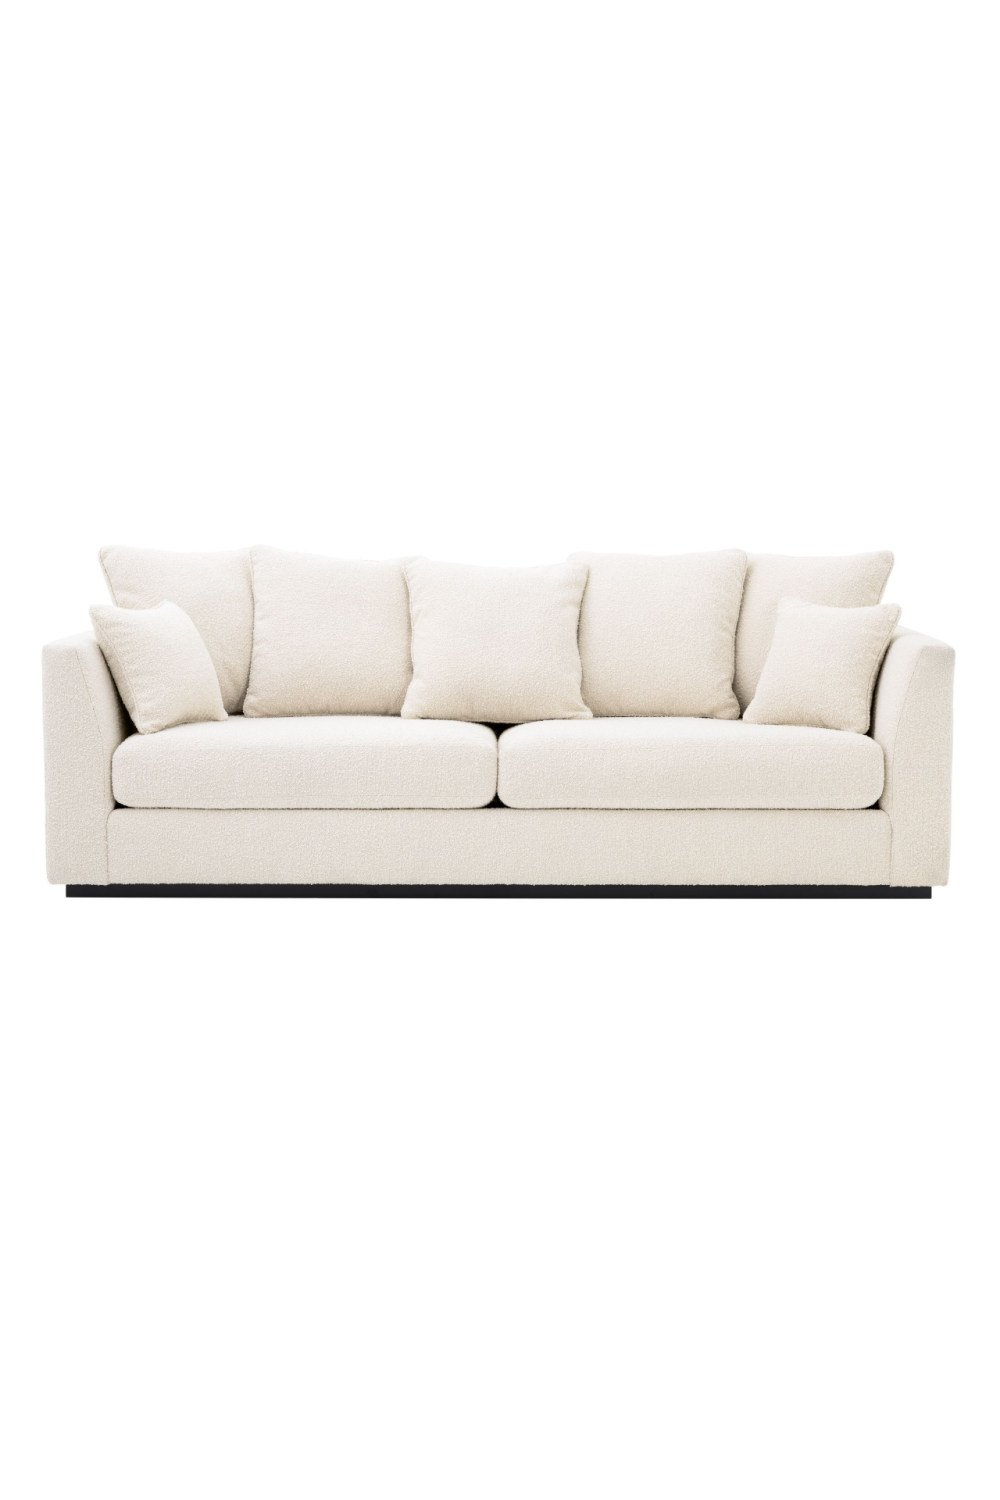 Bouclé Cream Sofa | Eichholtz Taylor | Woodfurniture.com